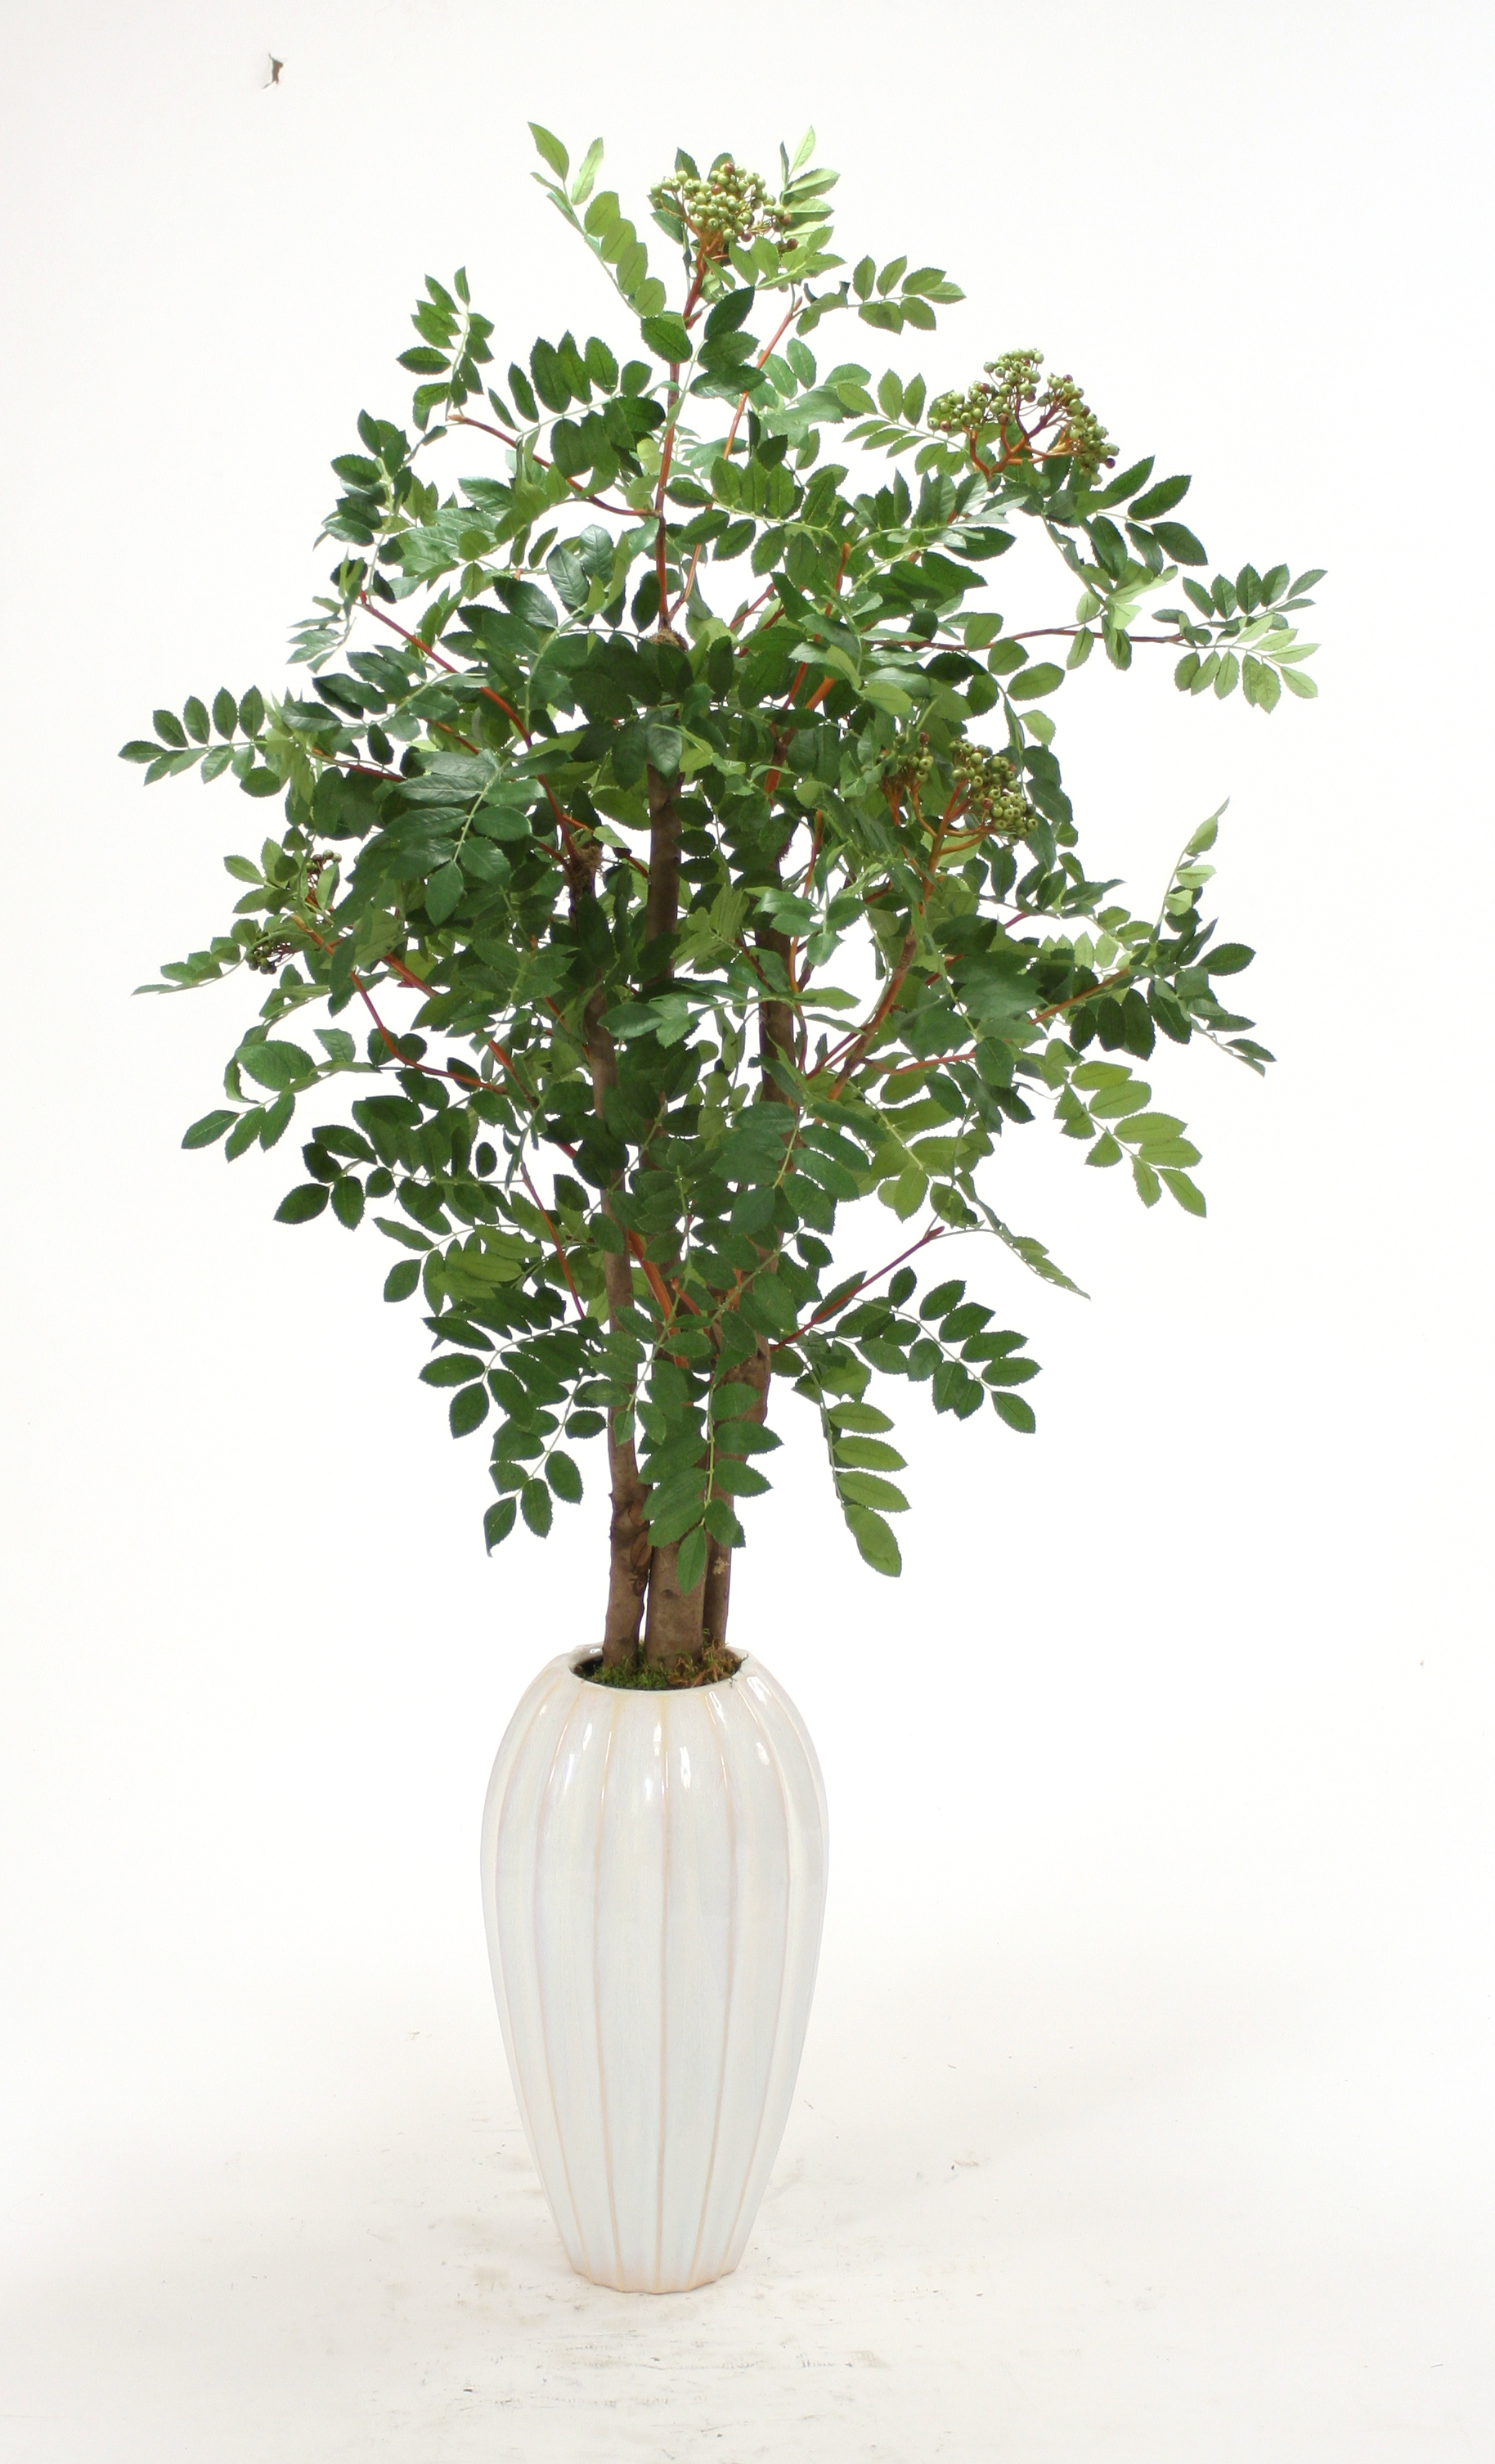 Silk Mountain Ash Floor Plant in Tall White Earthenware Vase  Free Shipping in USA  1001Shops